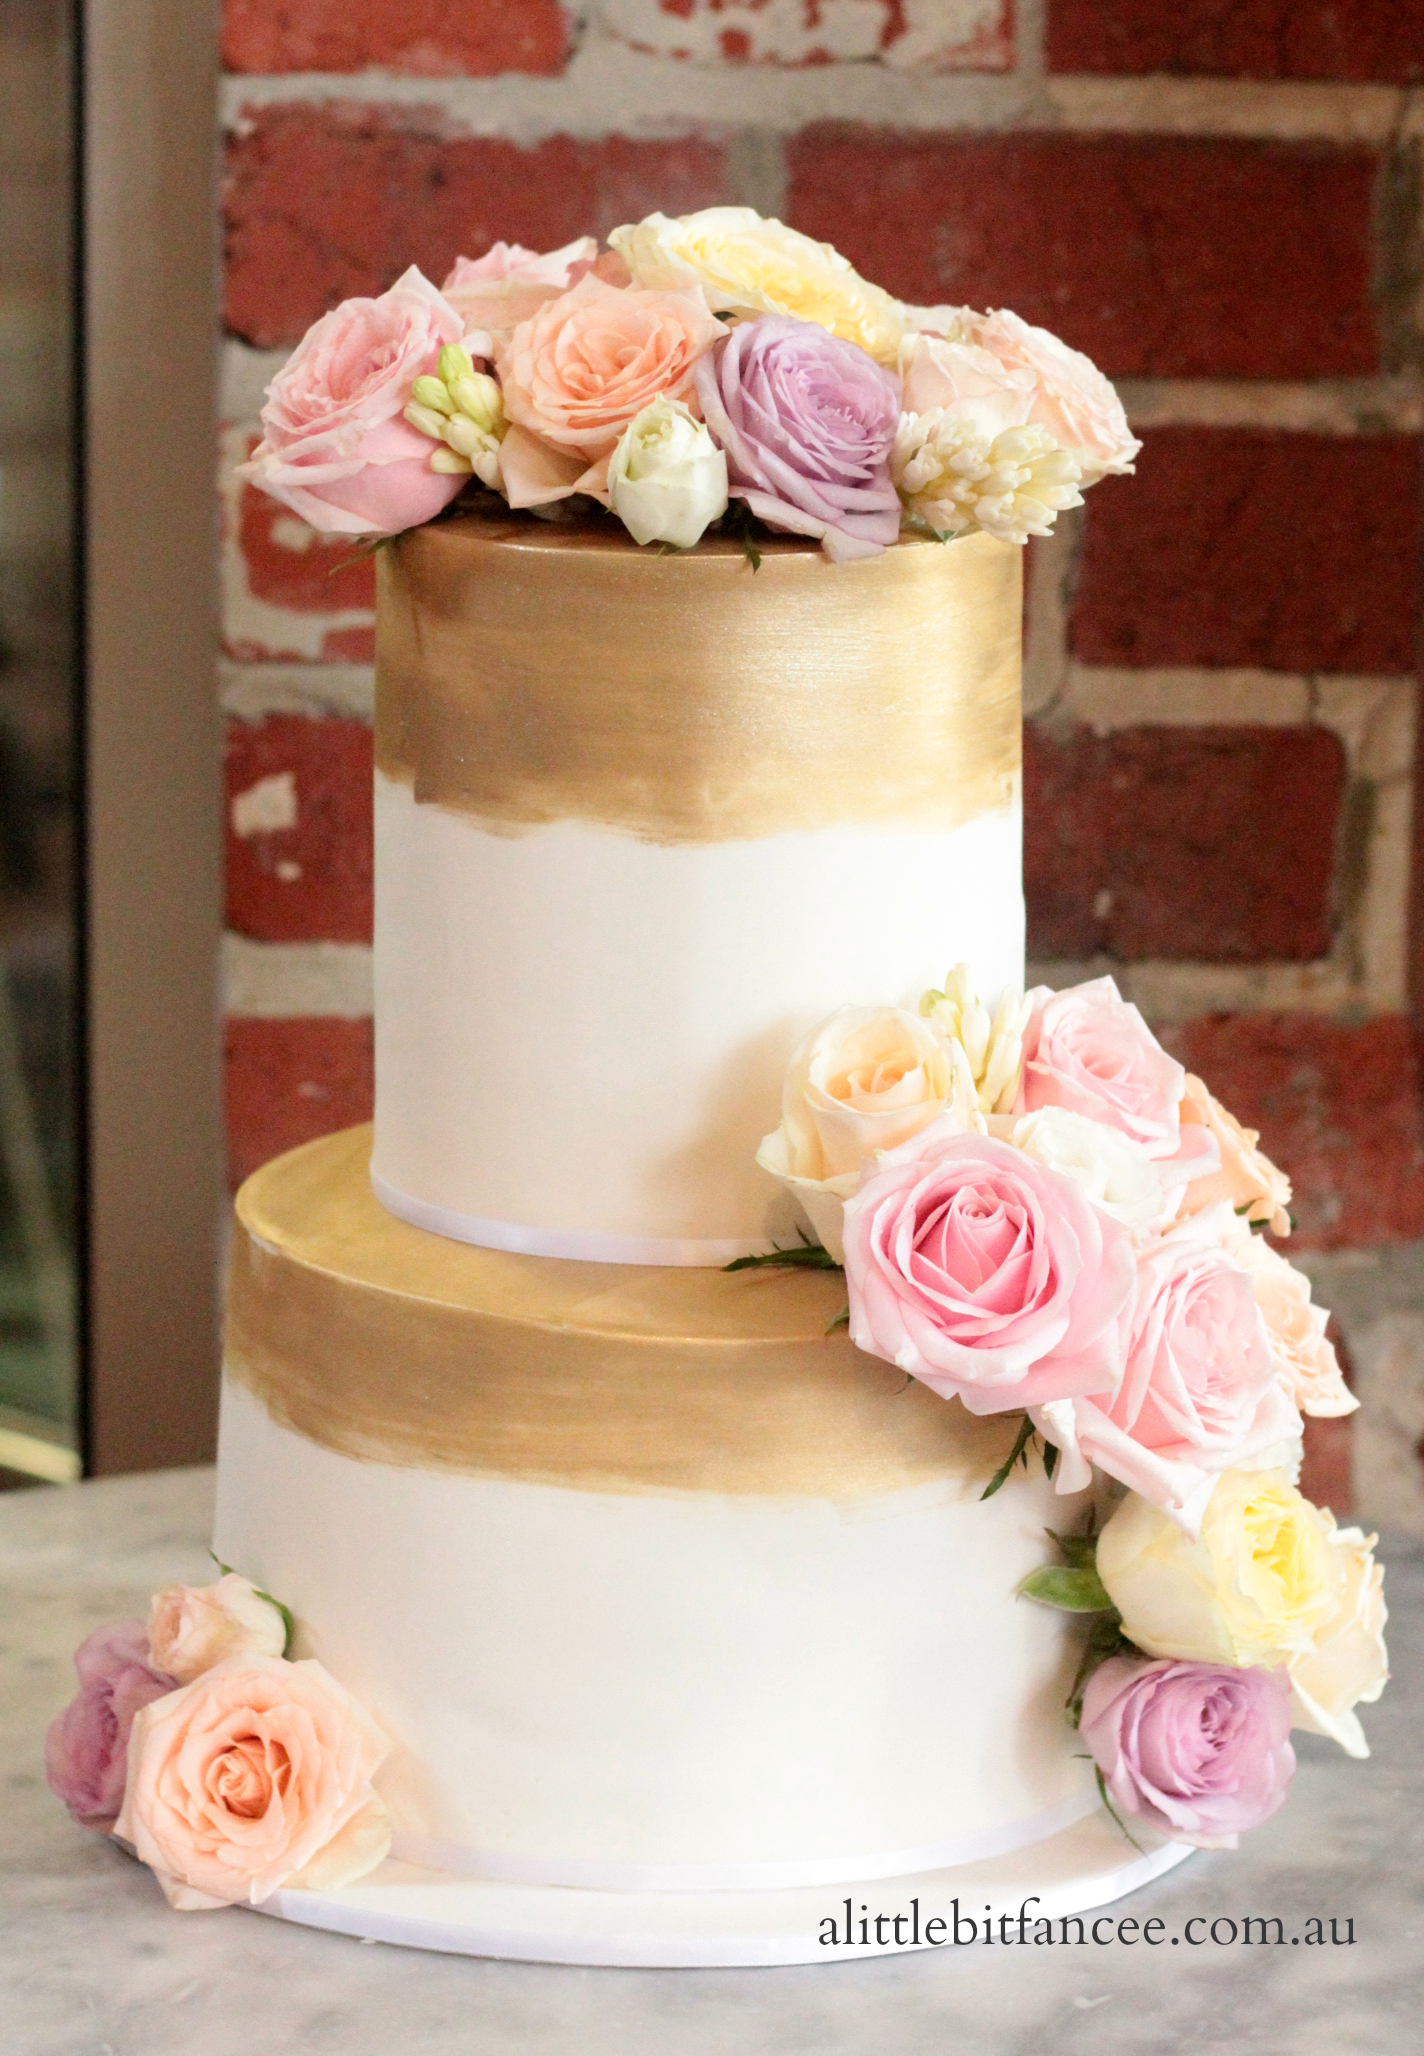 Fresh roses and fondant wedding cake